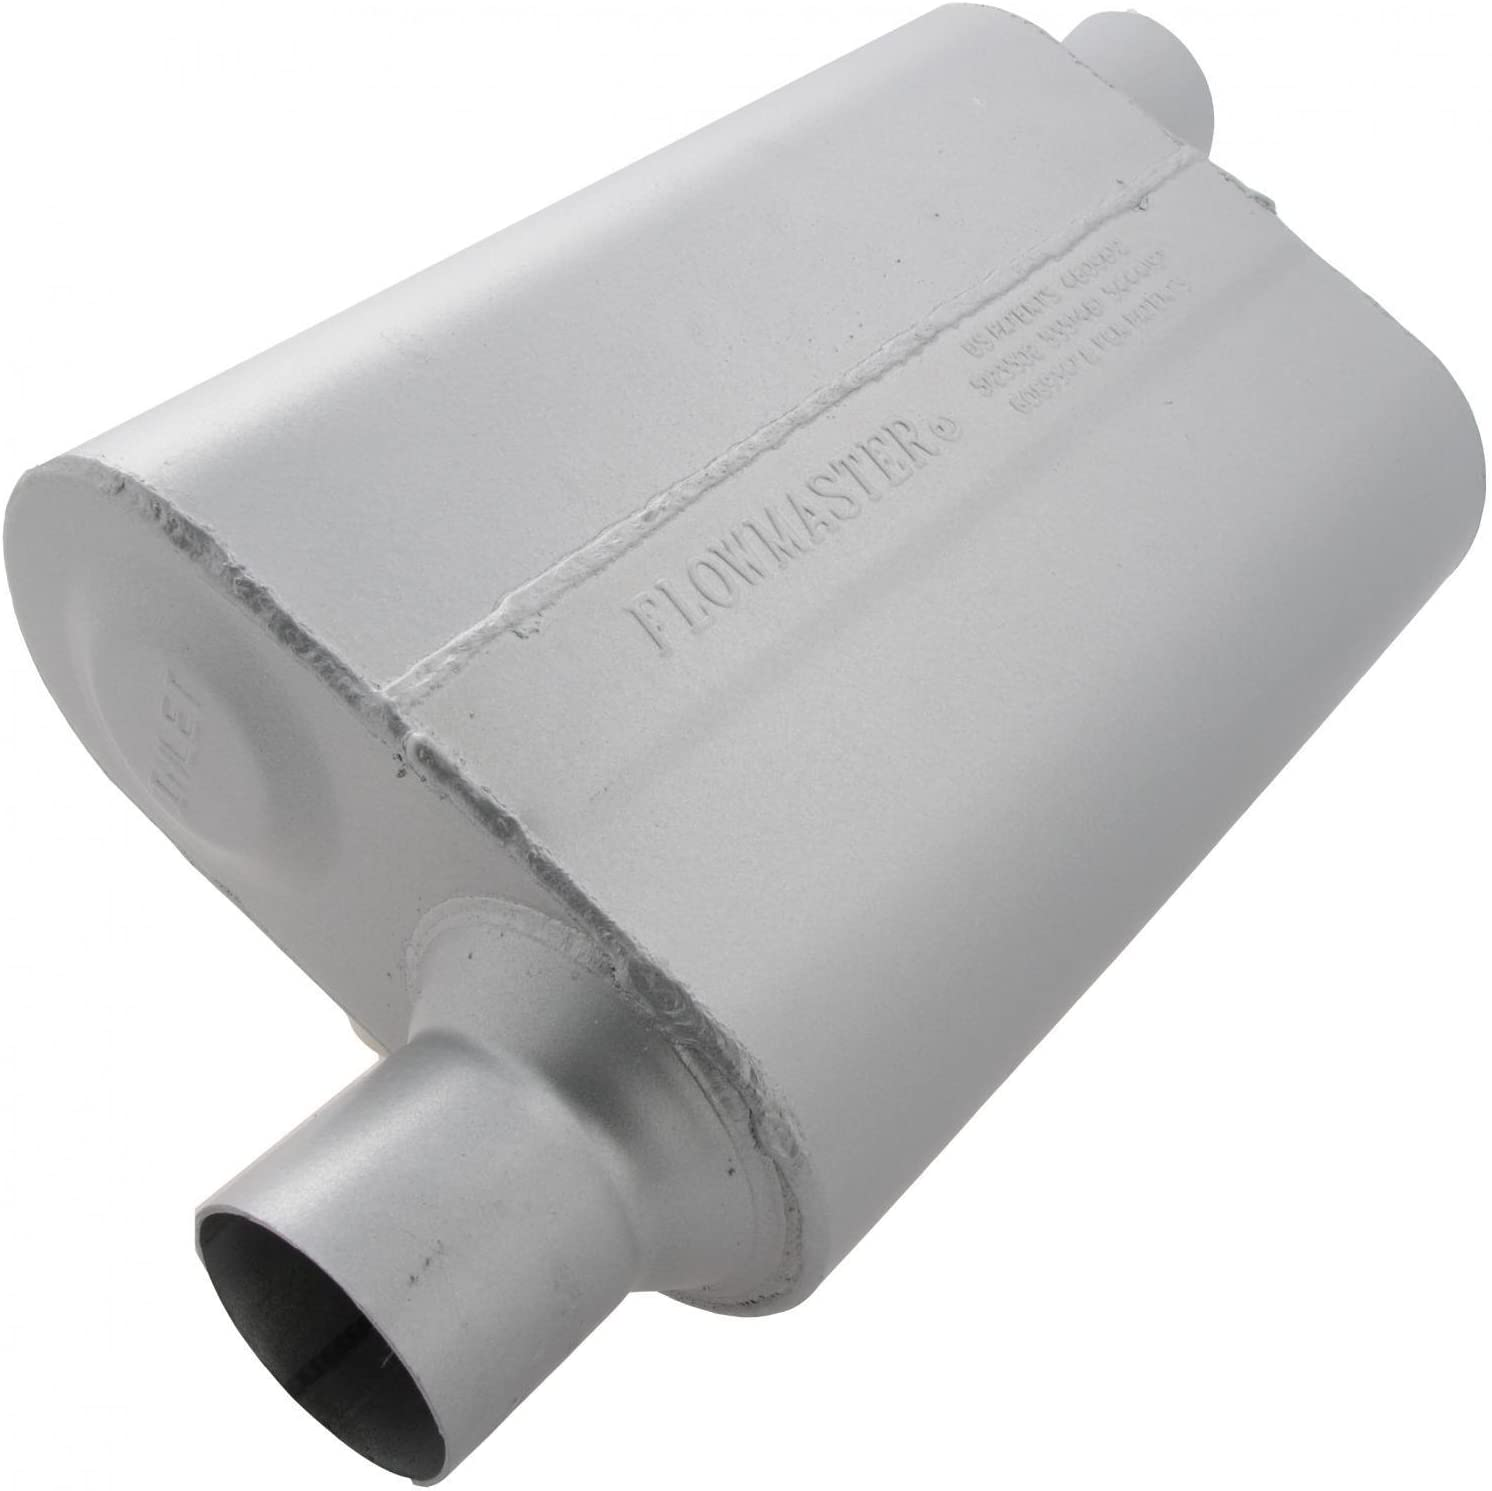 2.50 Offset IN Flowmaster 942543 40 Delta Flow Muffler 2.50 Offset OUT Aggressive Sound